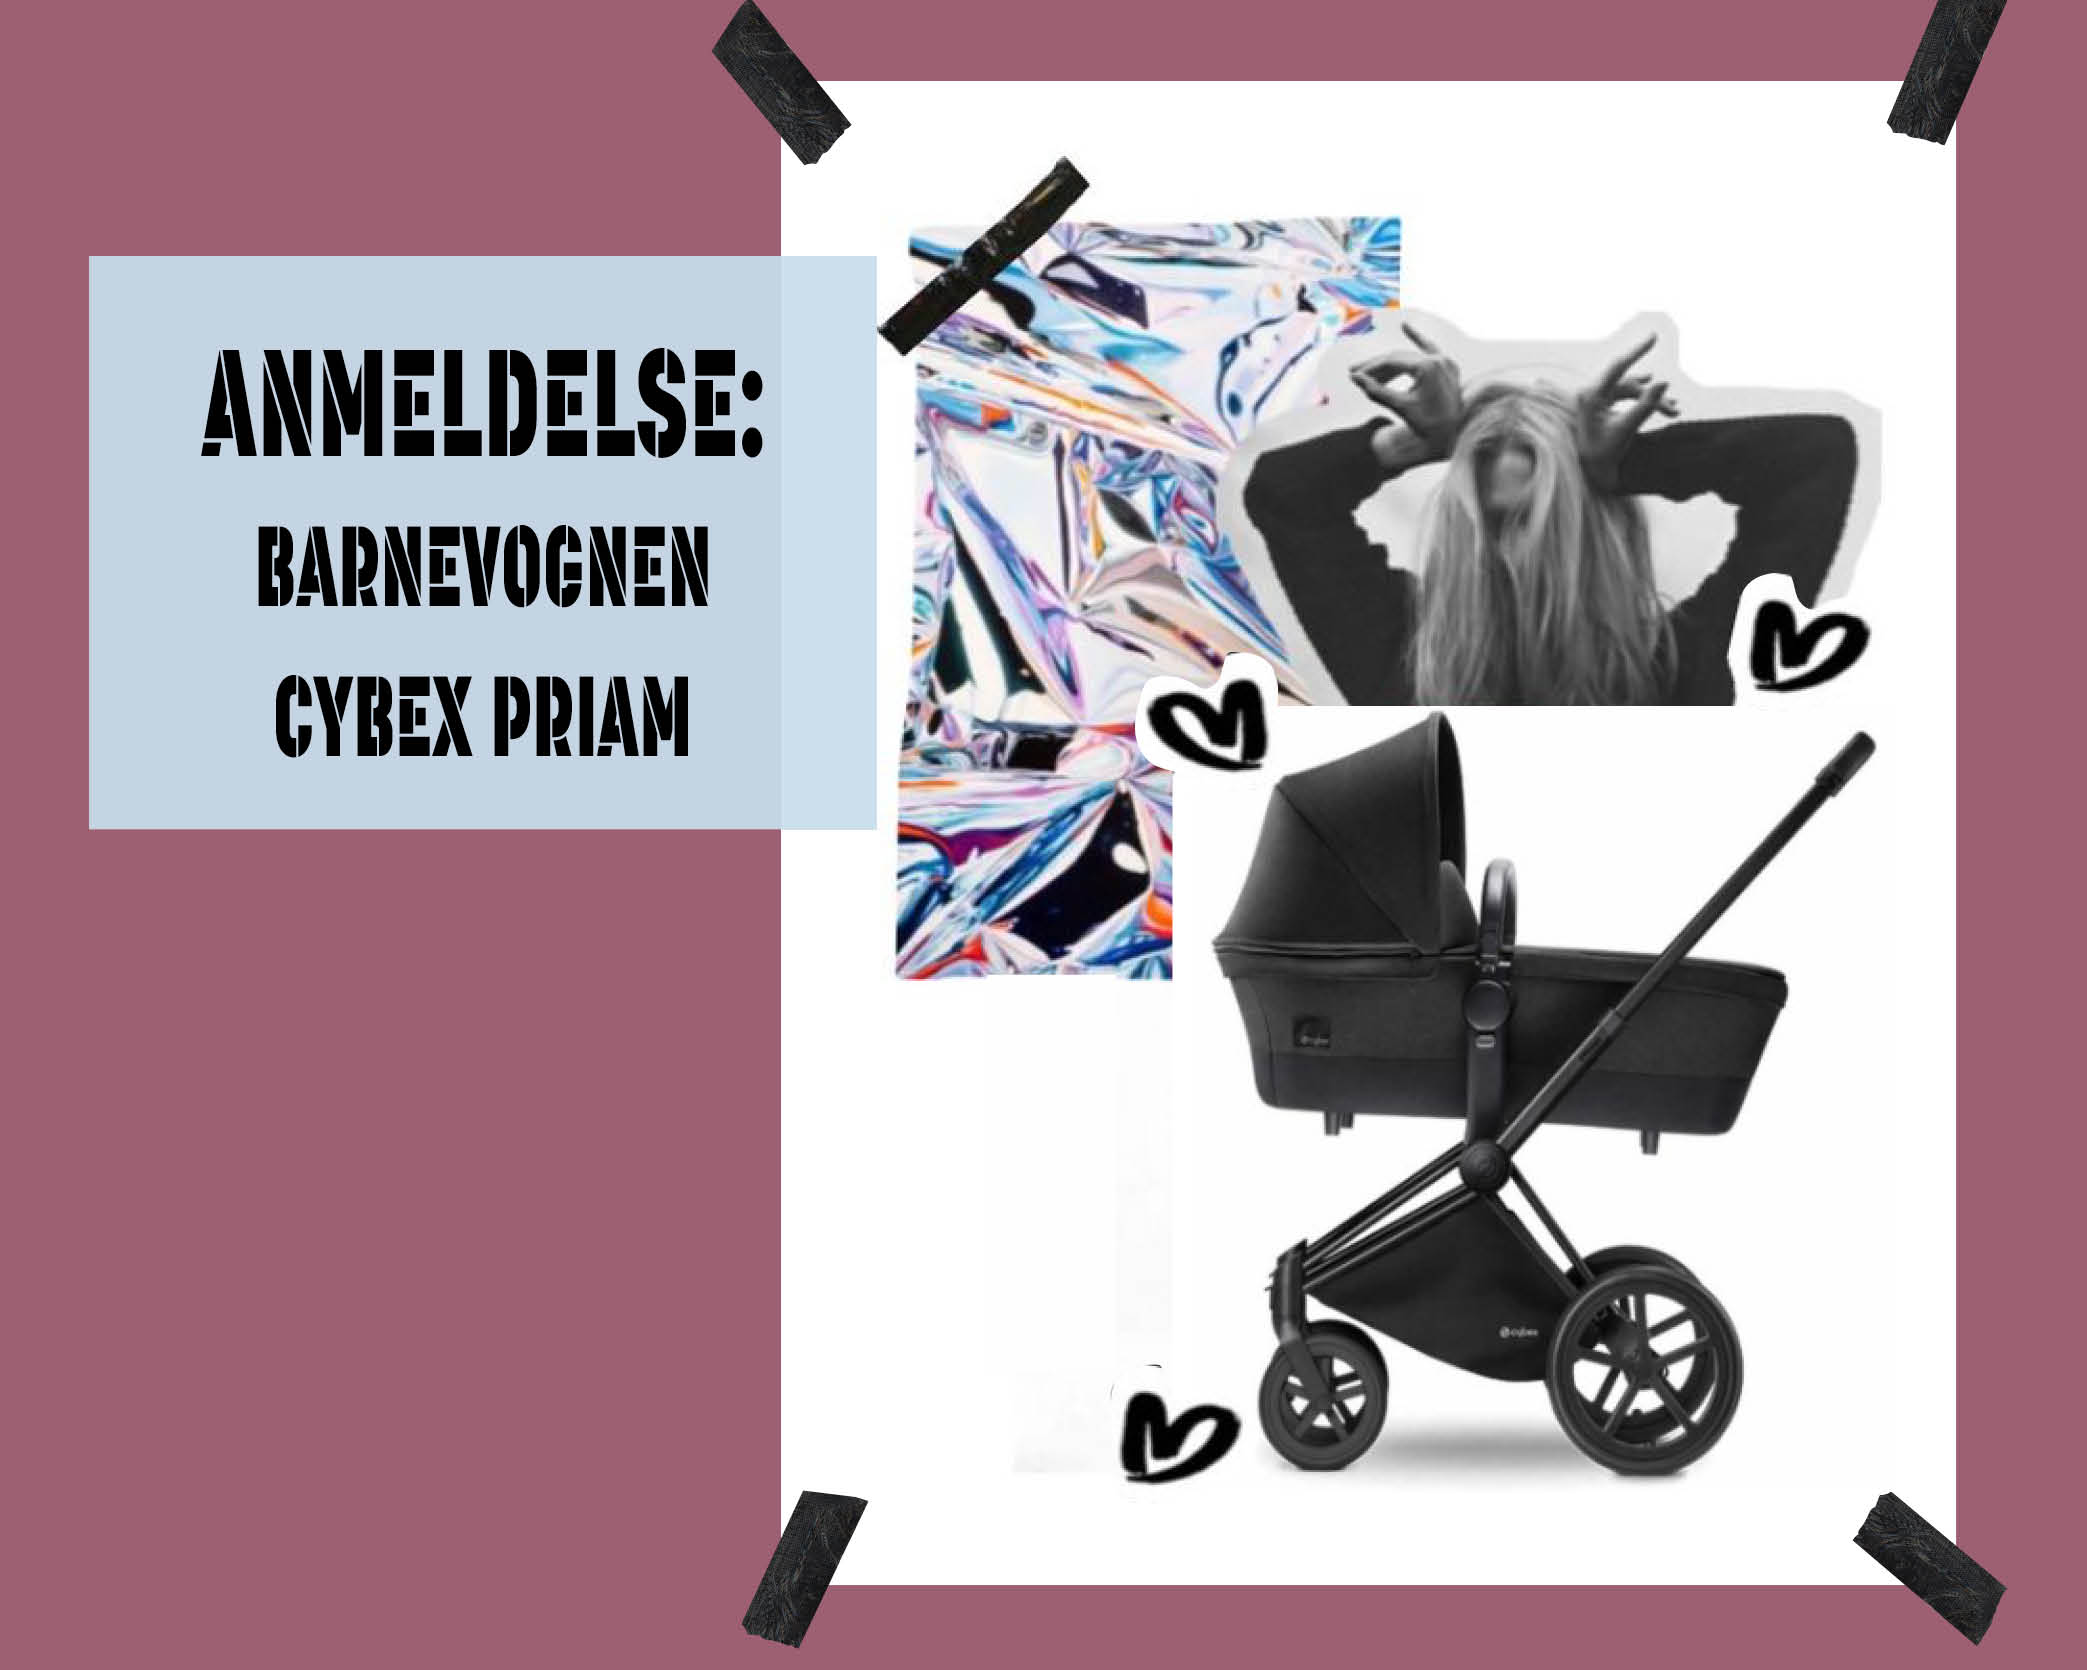 cybex_priam_ammeldelse